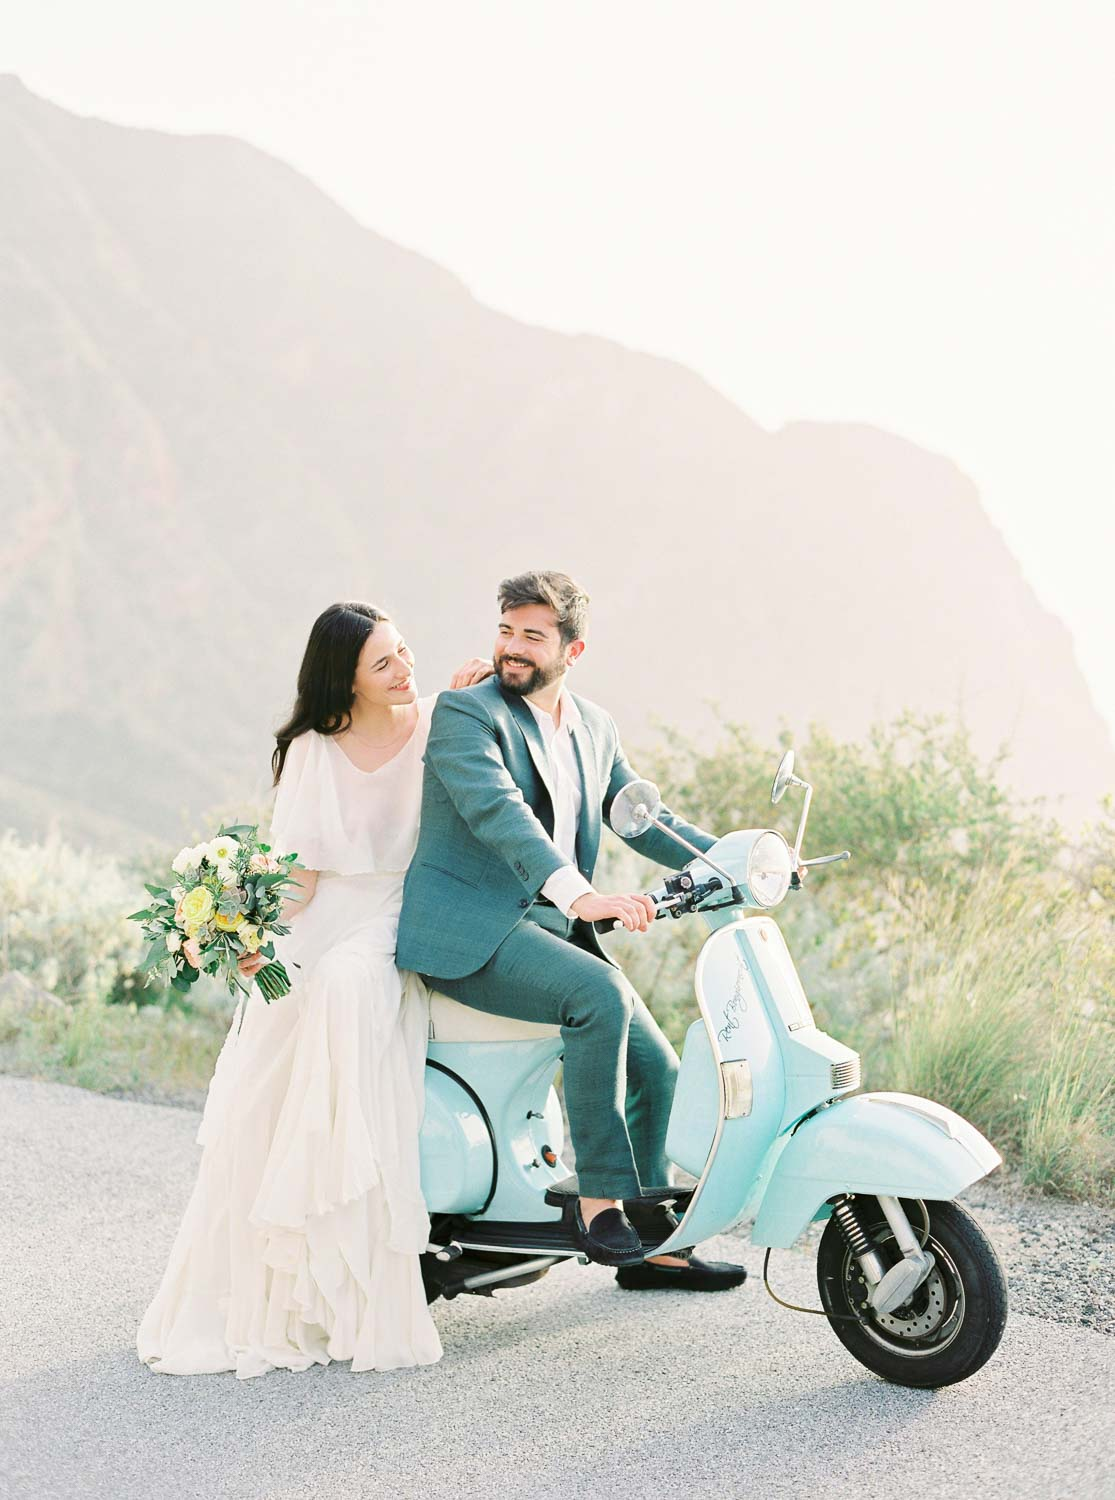 Bride and groom on Vespa PX